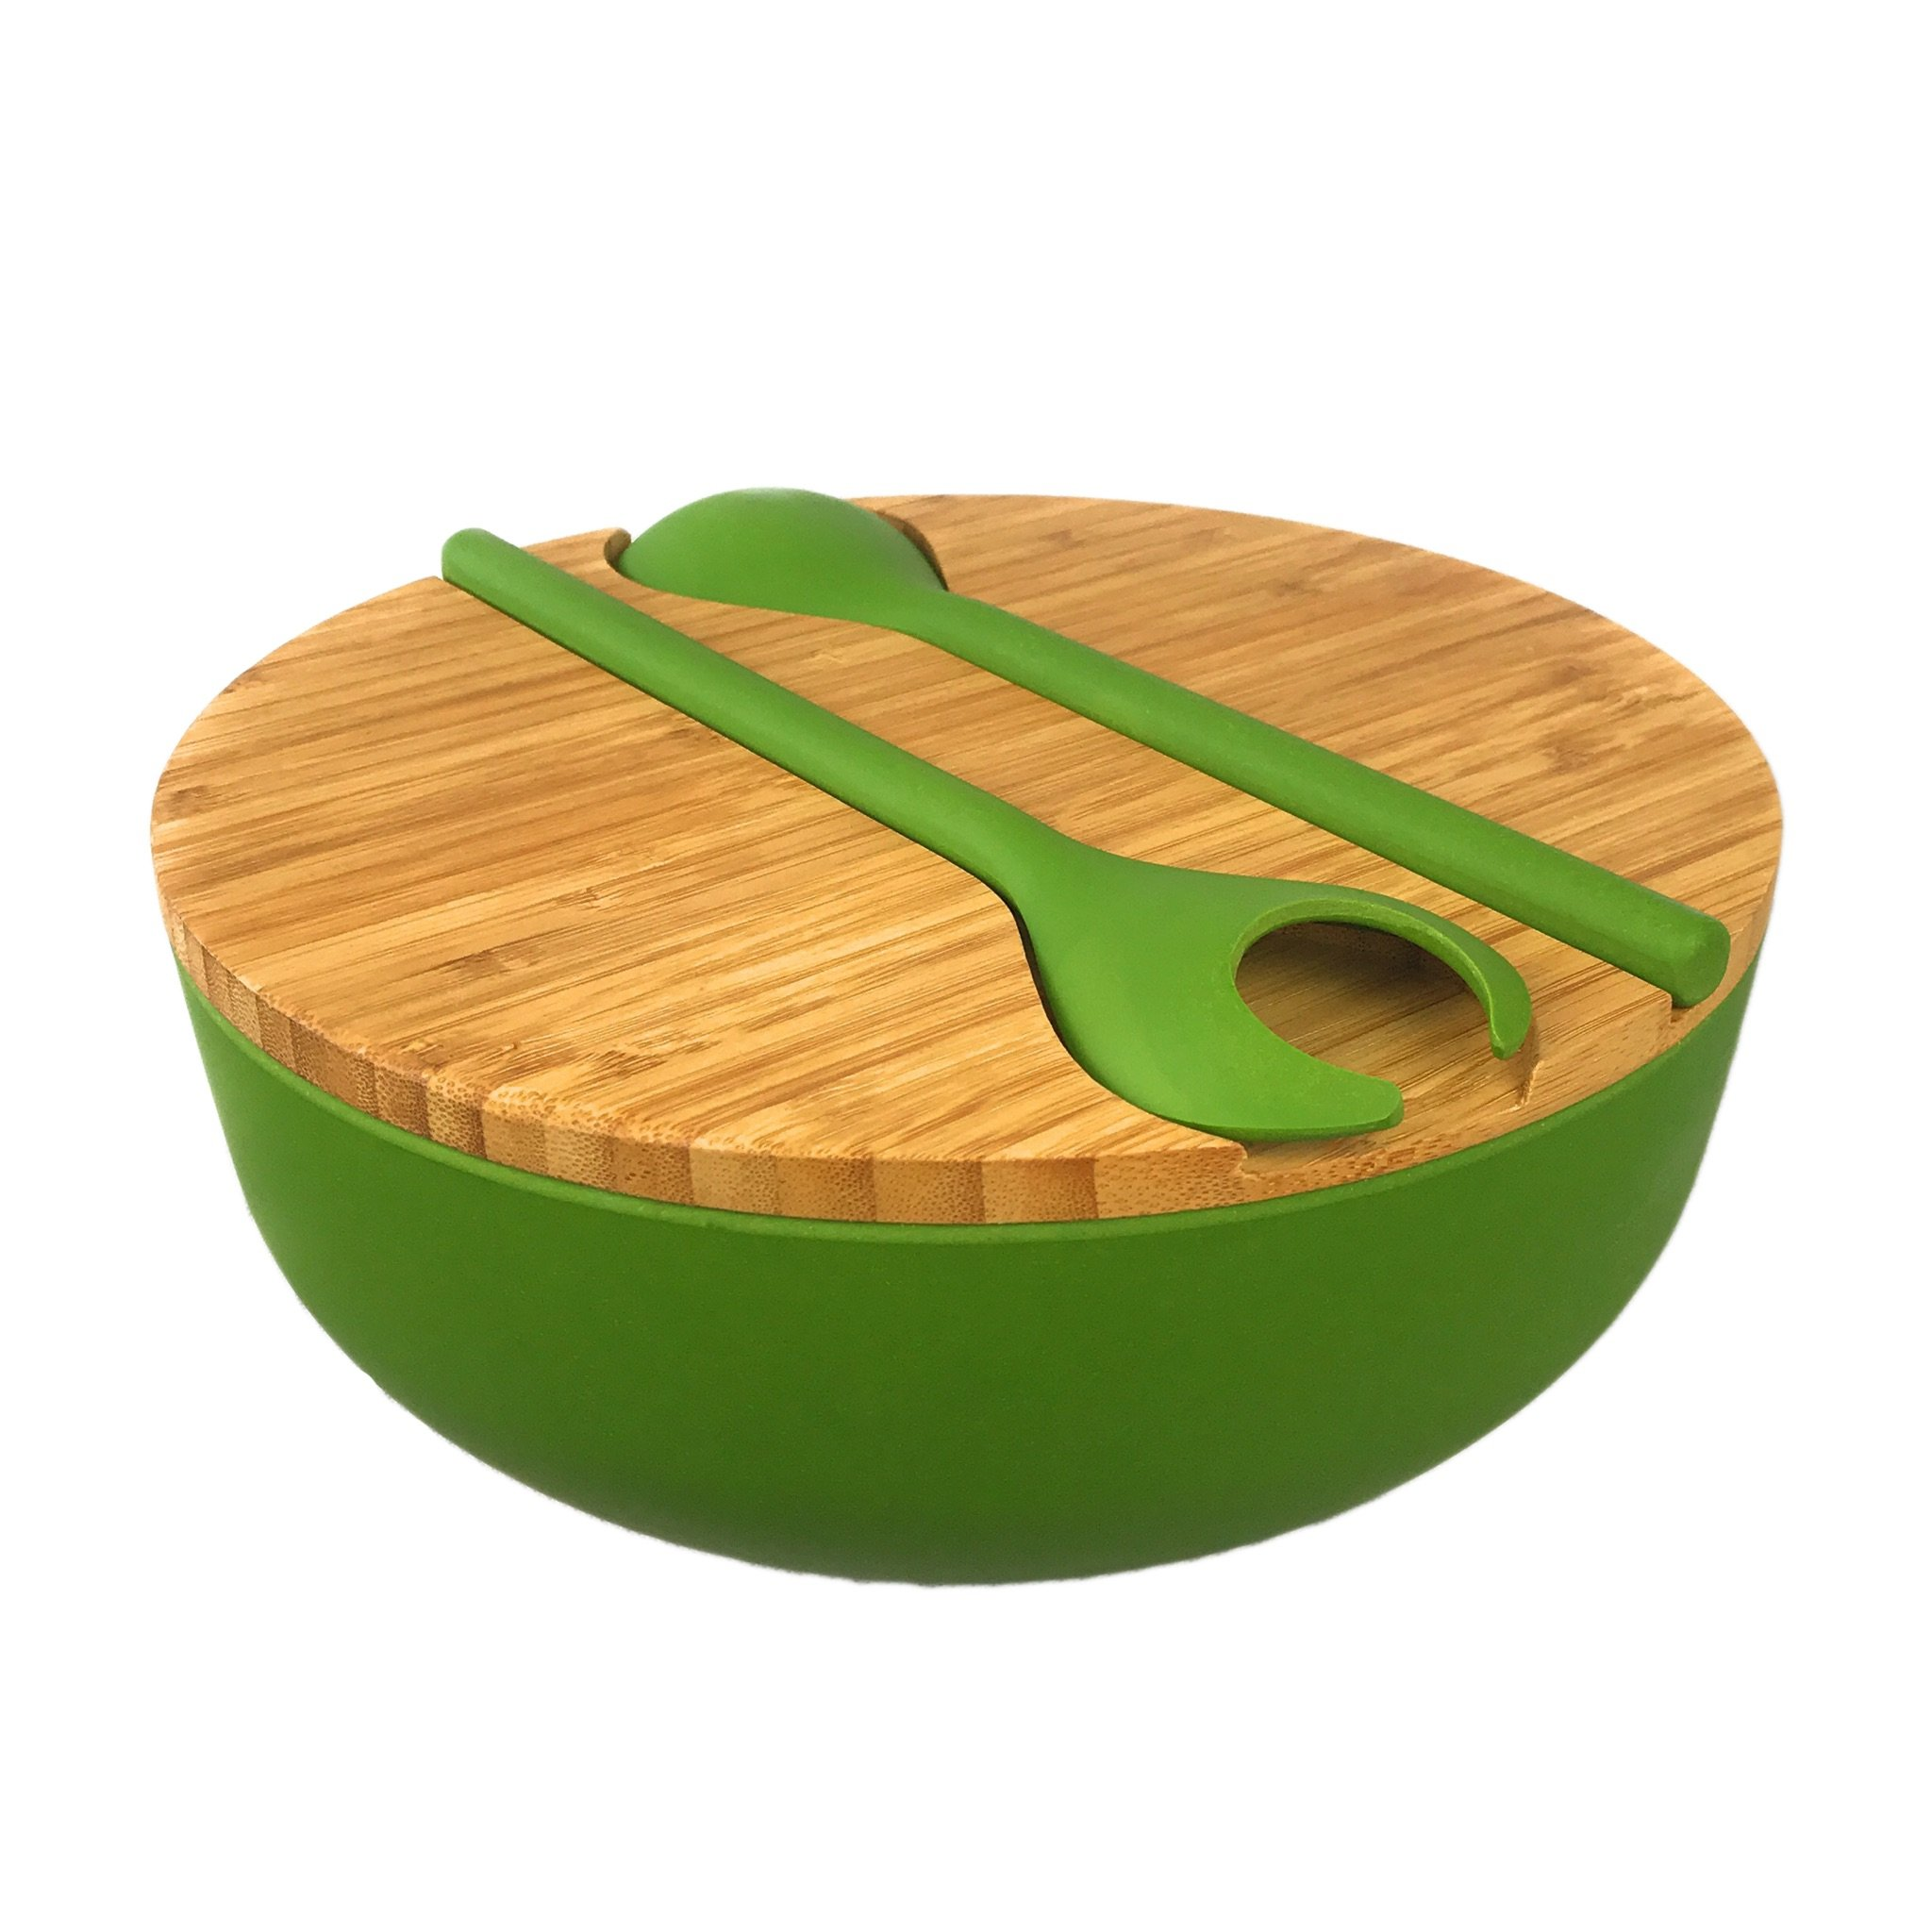 Salad and Serving Bowl Set with Lid| Green Bamboo Fiber with Quick Chop Cutting Board and built in Servers for Serving Salads, Pasta and Fruit| Eco-friendly